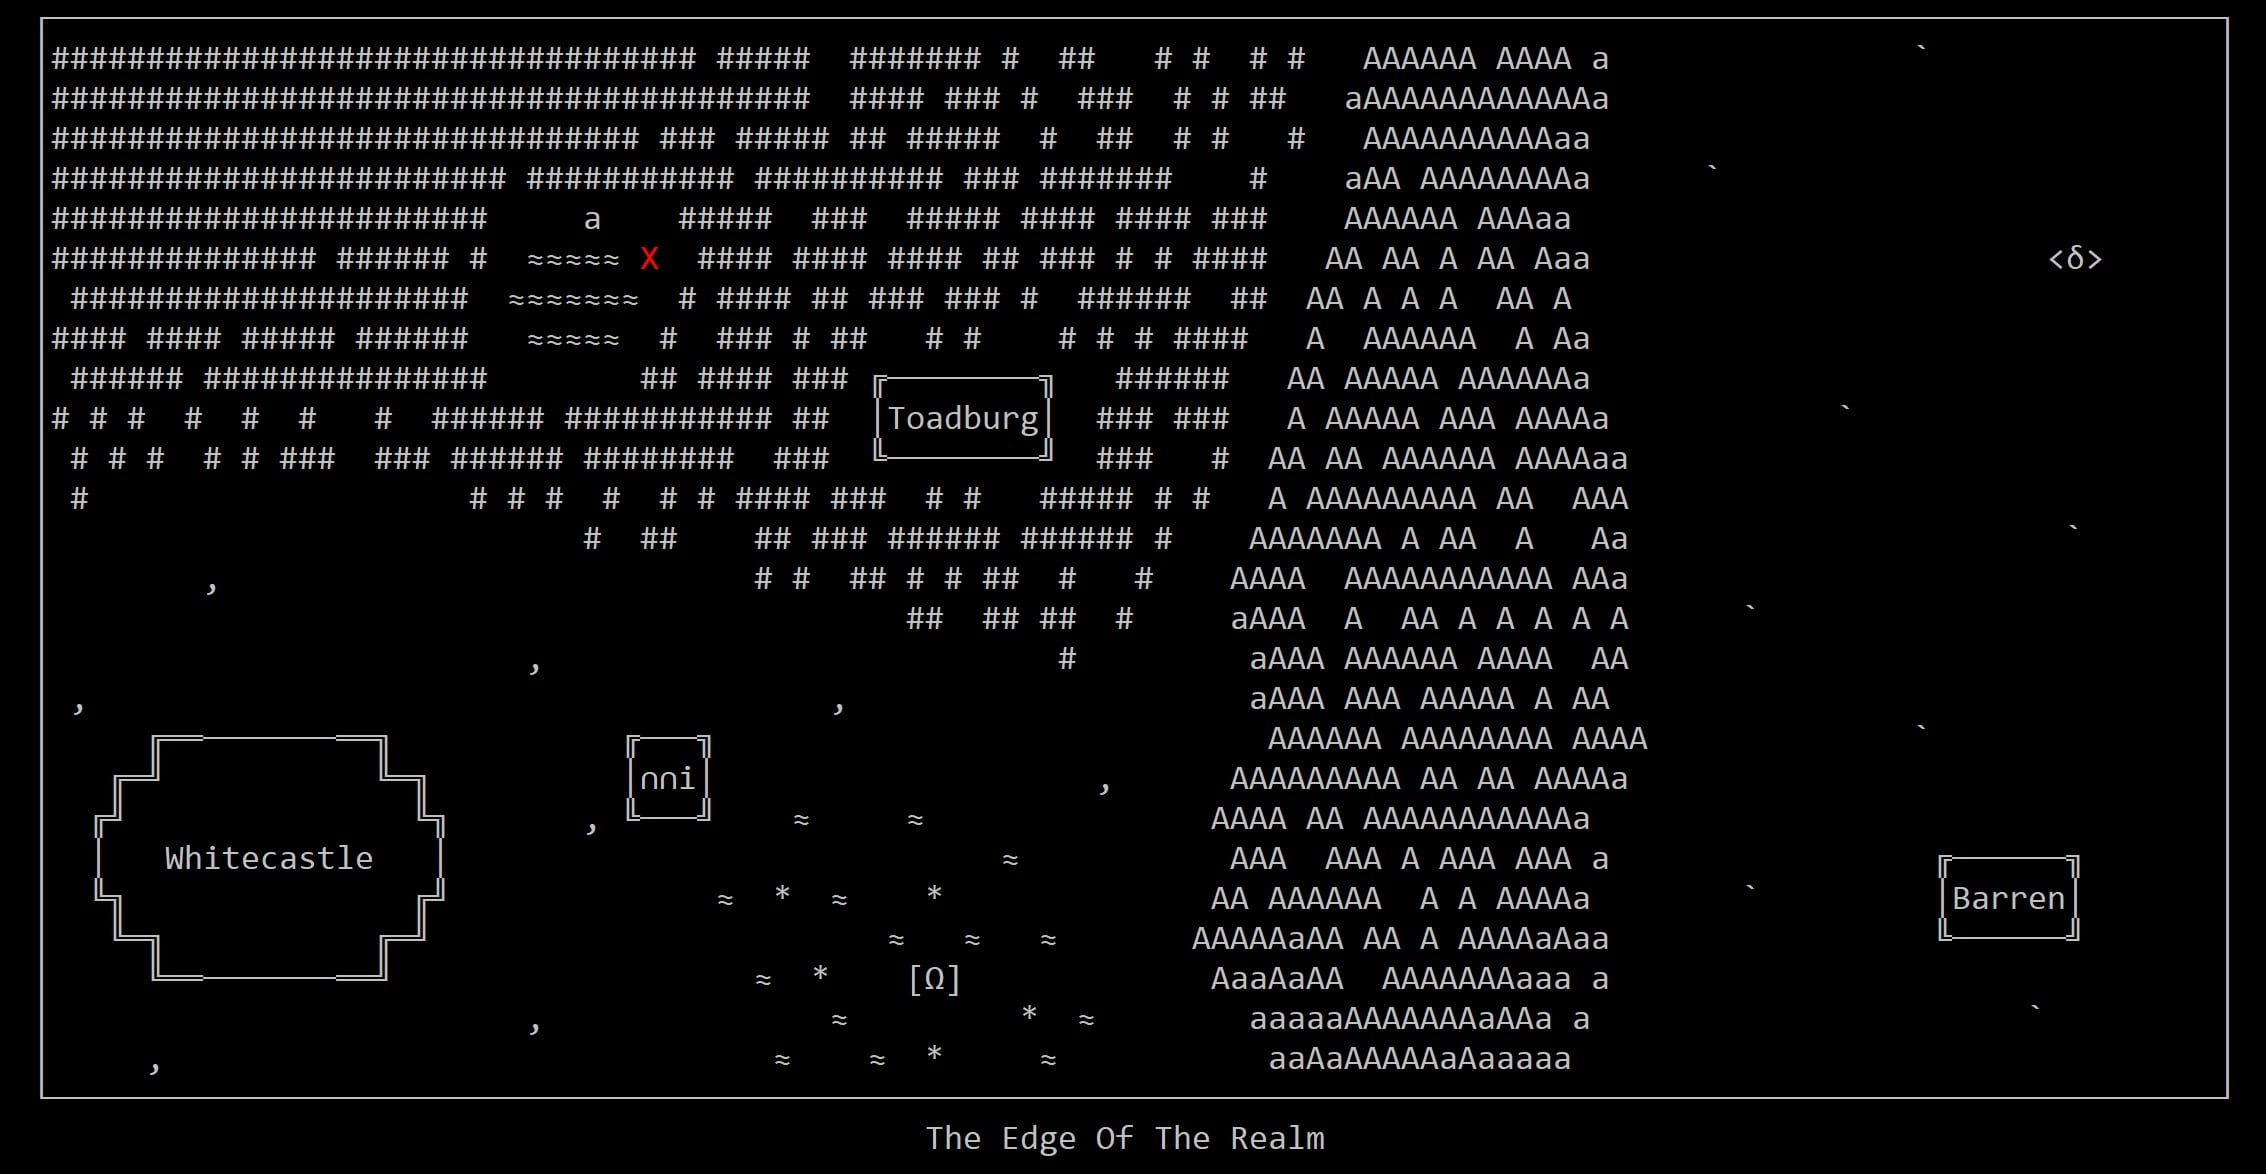 The Edge of the Realm ASCII Game